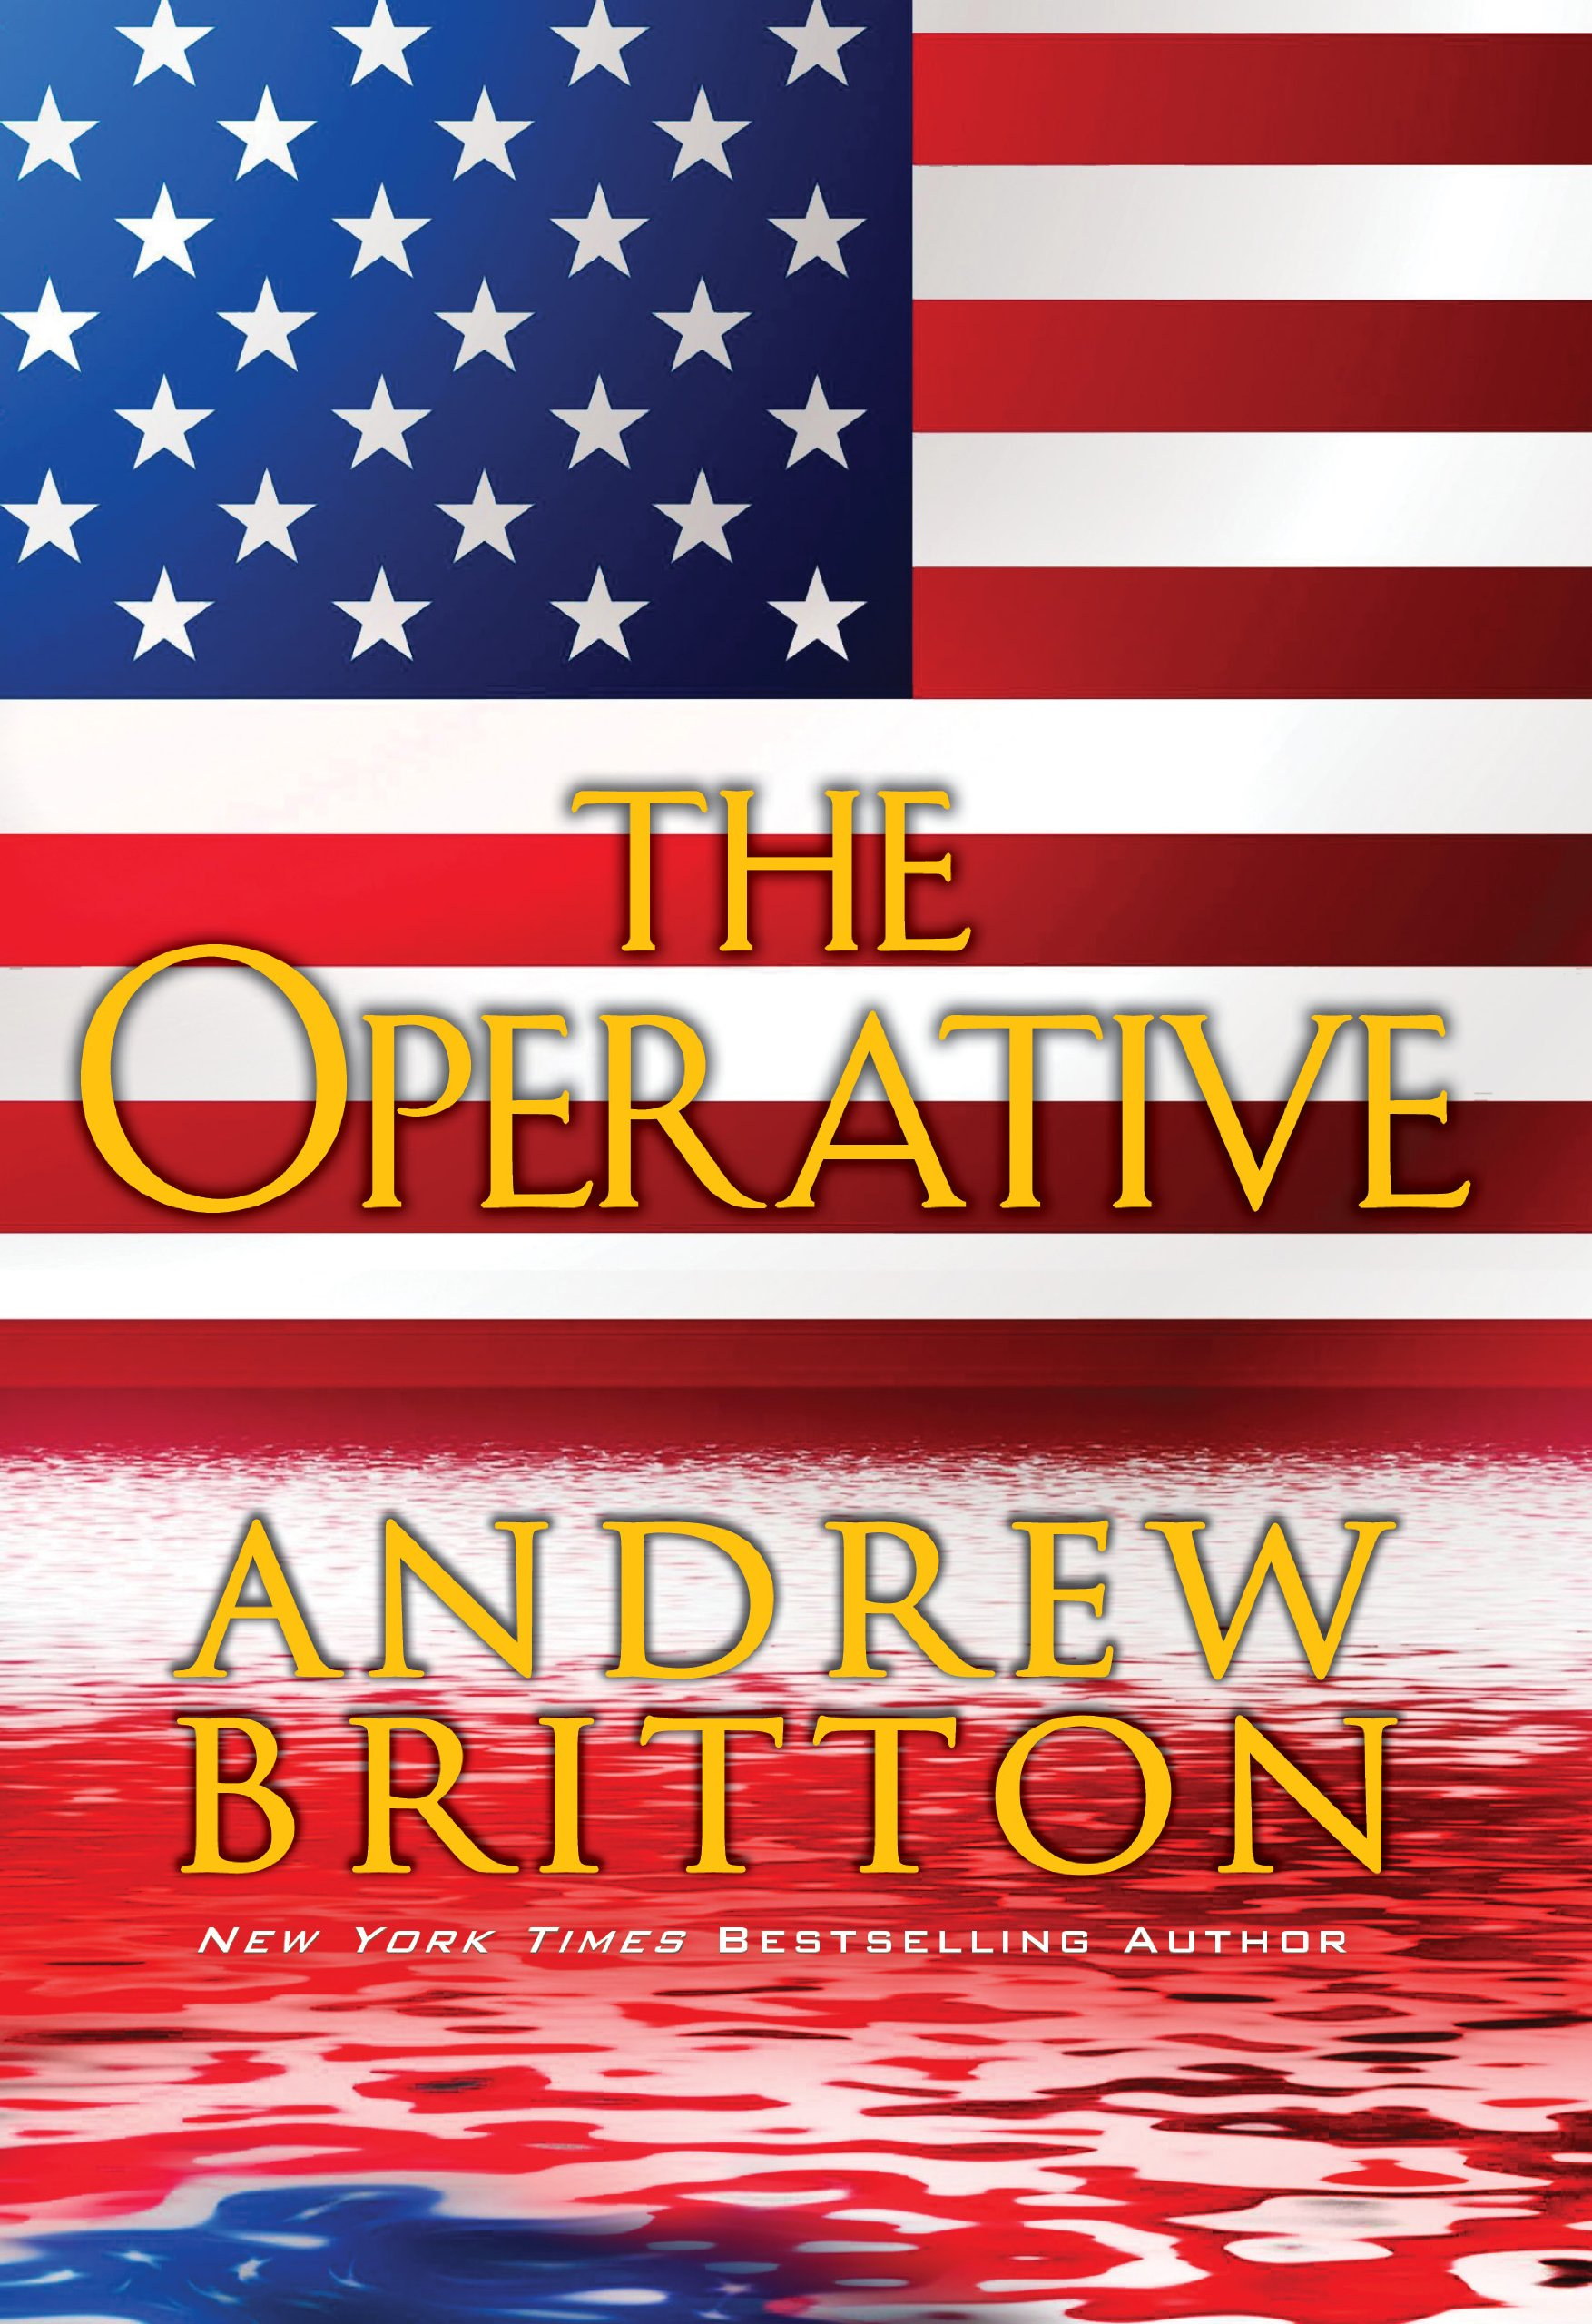 Book cover of The Operative